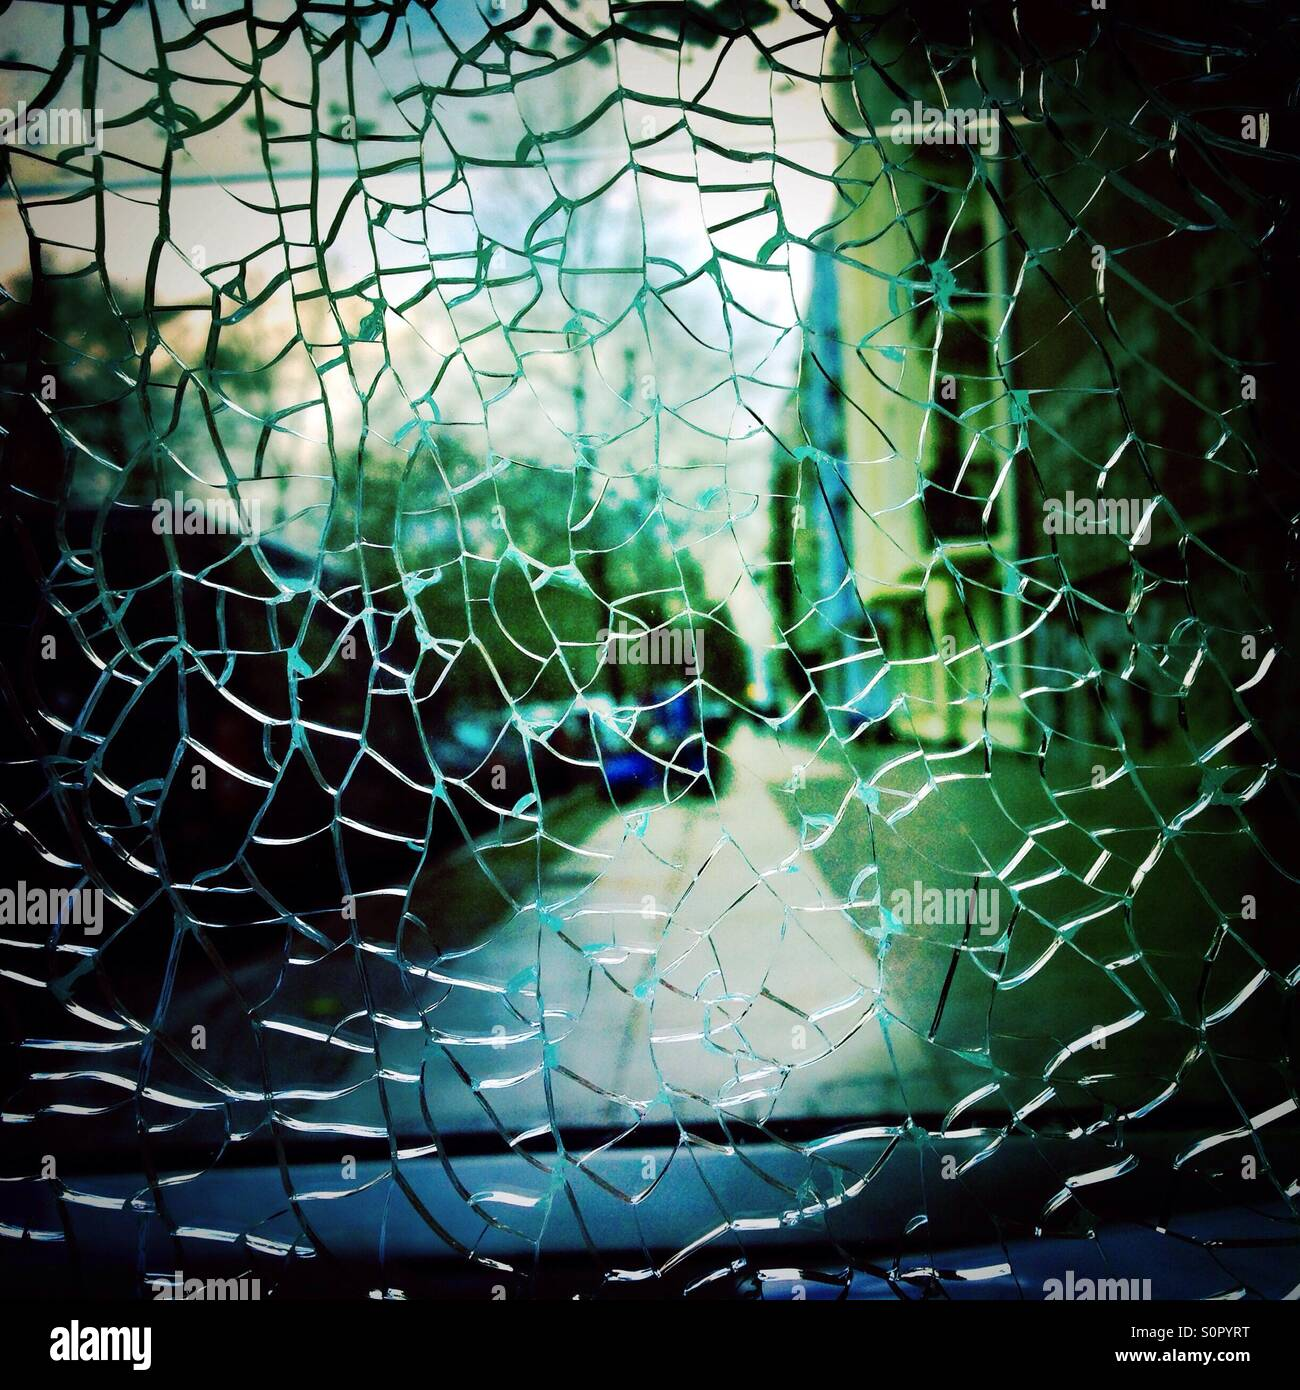 Broken Glass and a city street in the background - Stock Image